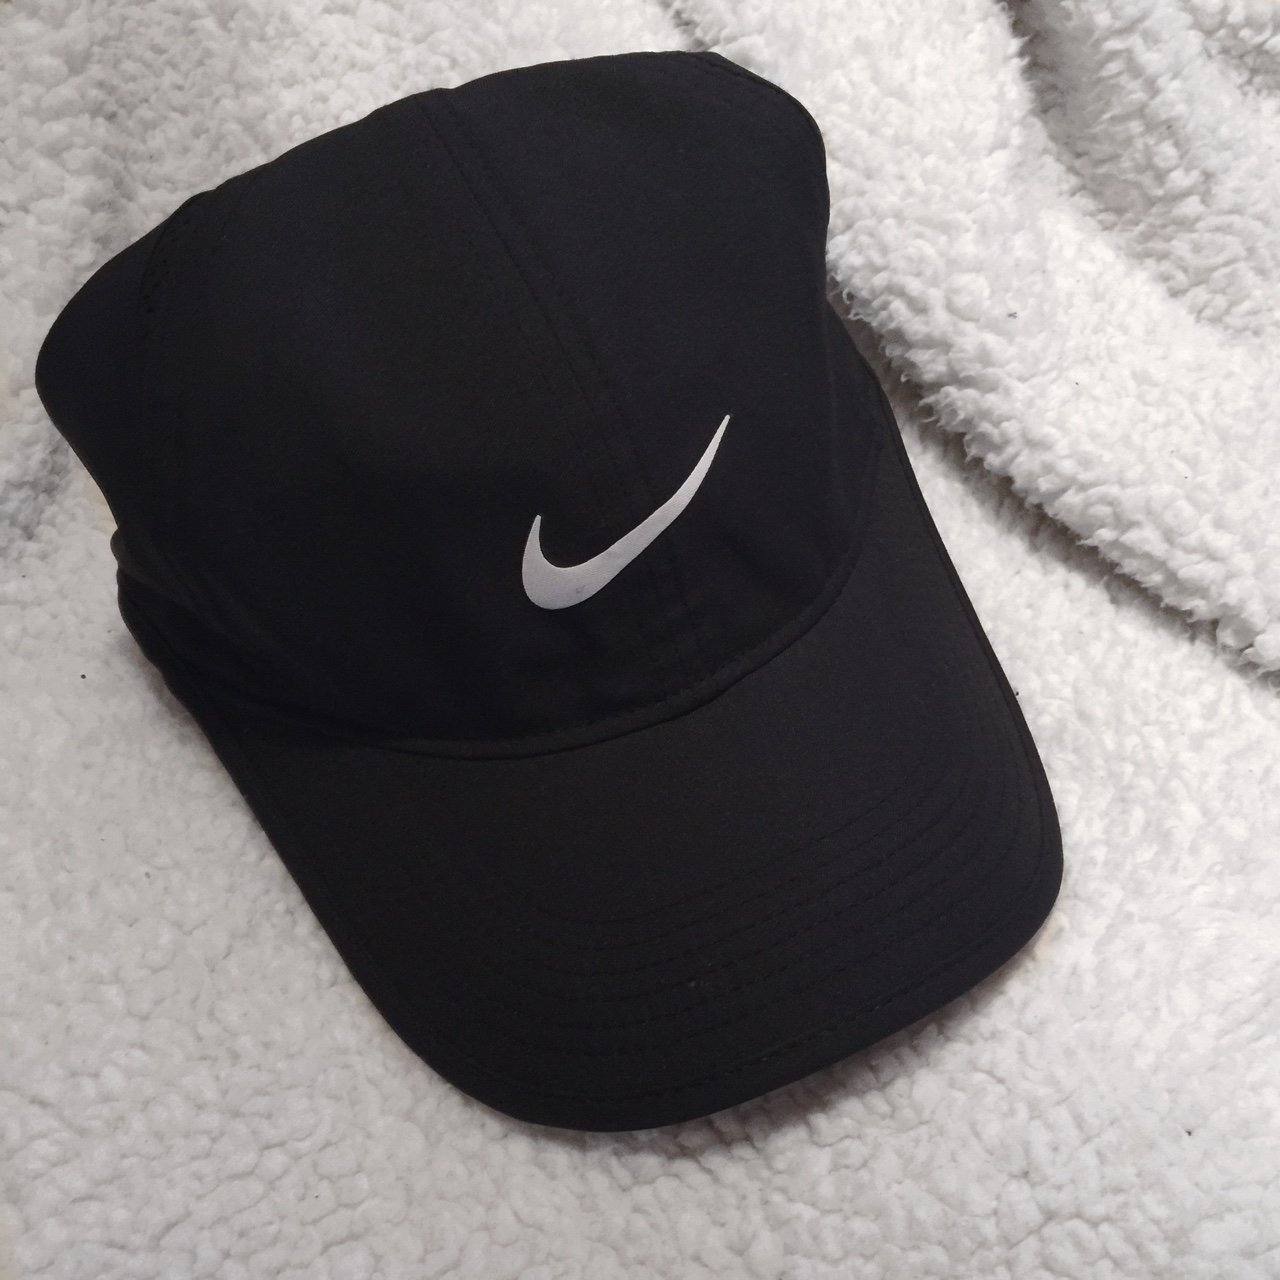 528c0aa2d5b97 Nike feather light Dri-Fit hat. In excellent condition with - Depop